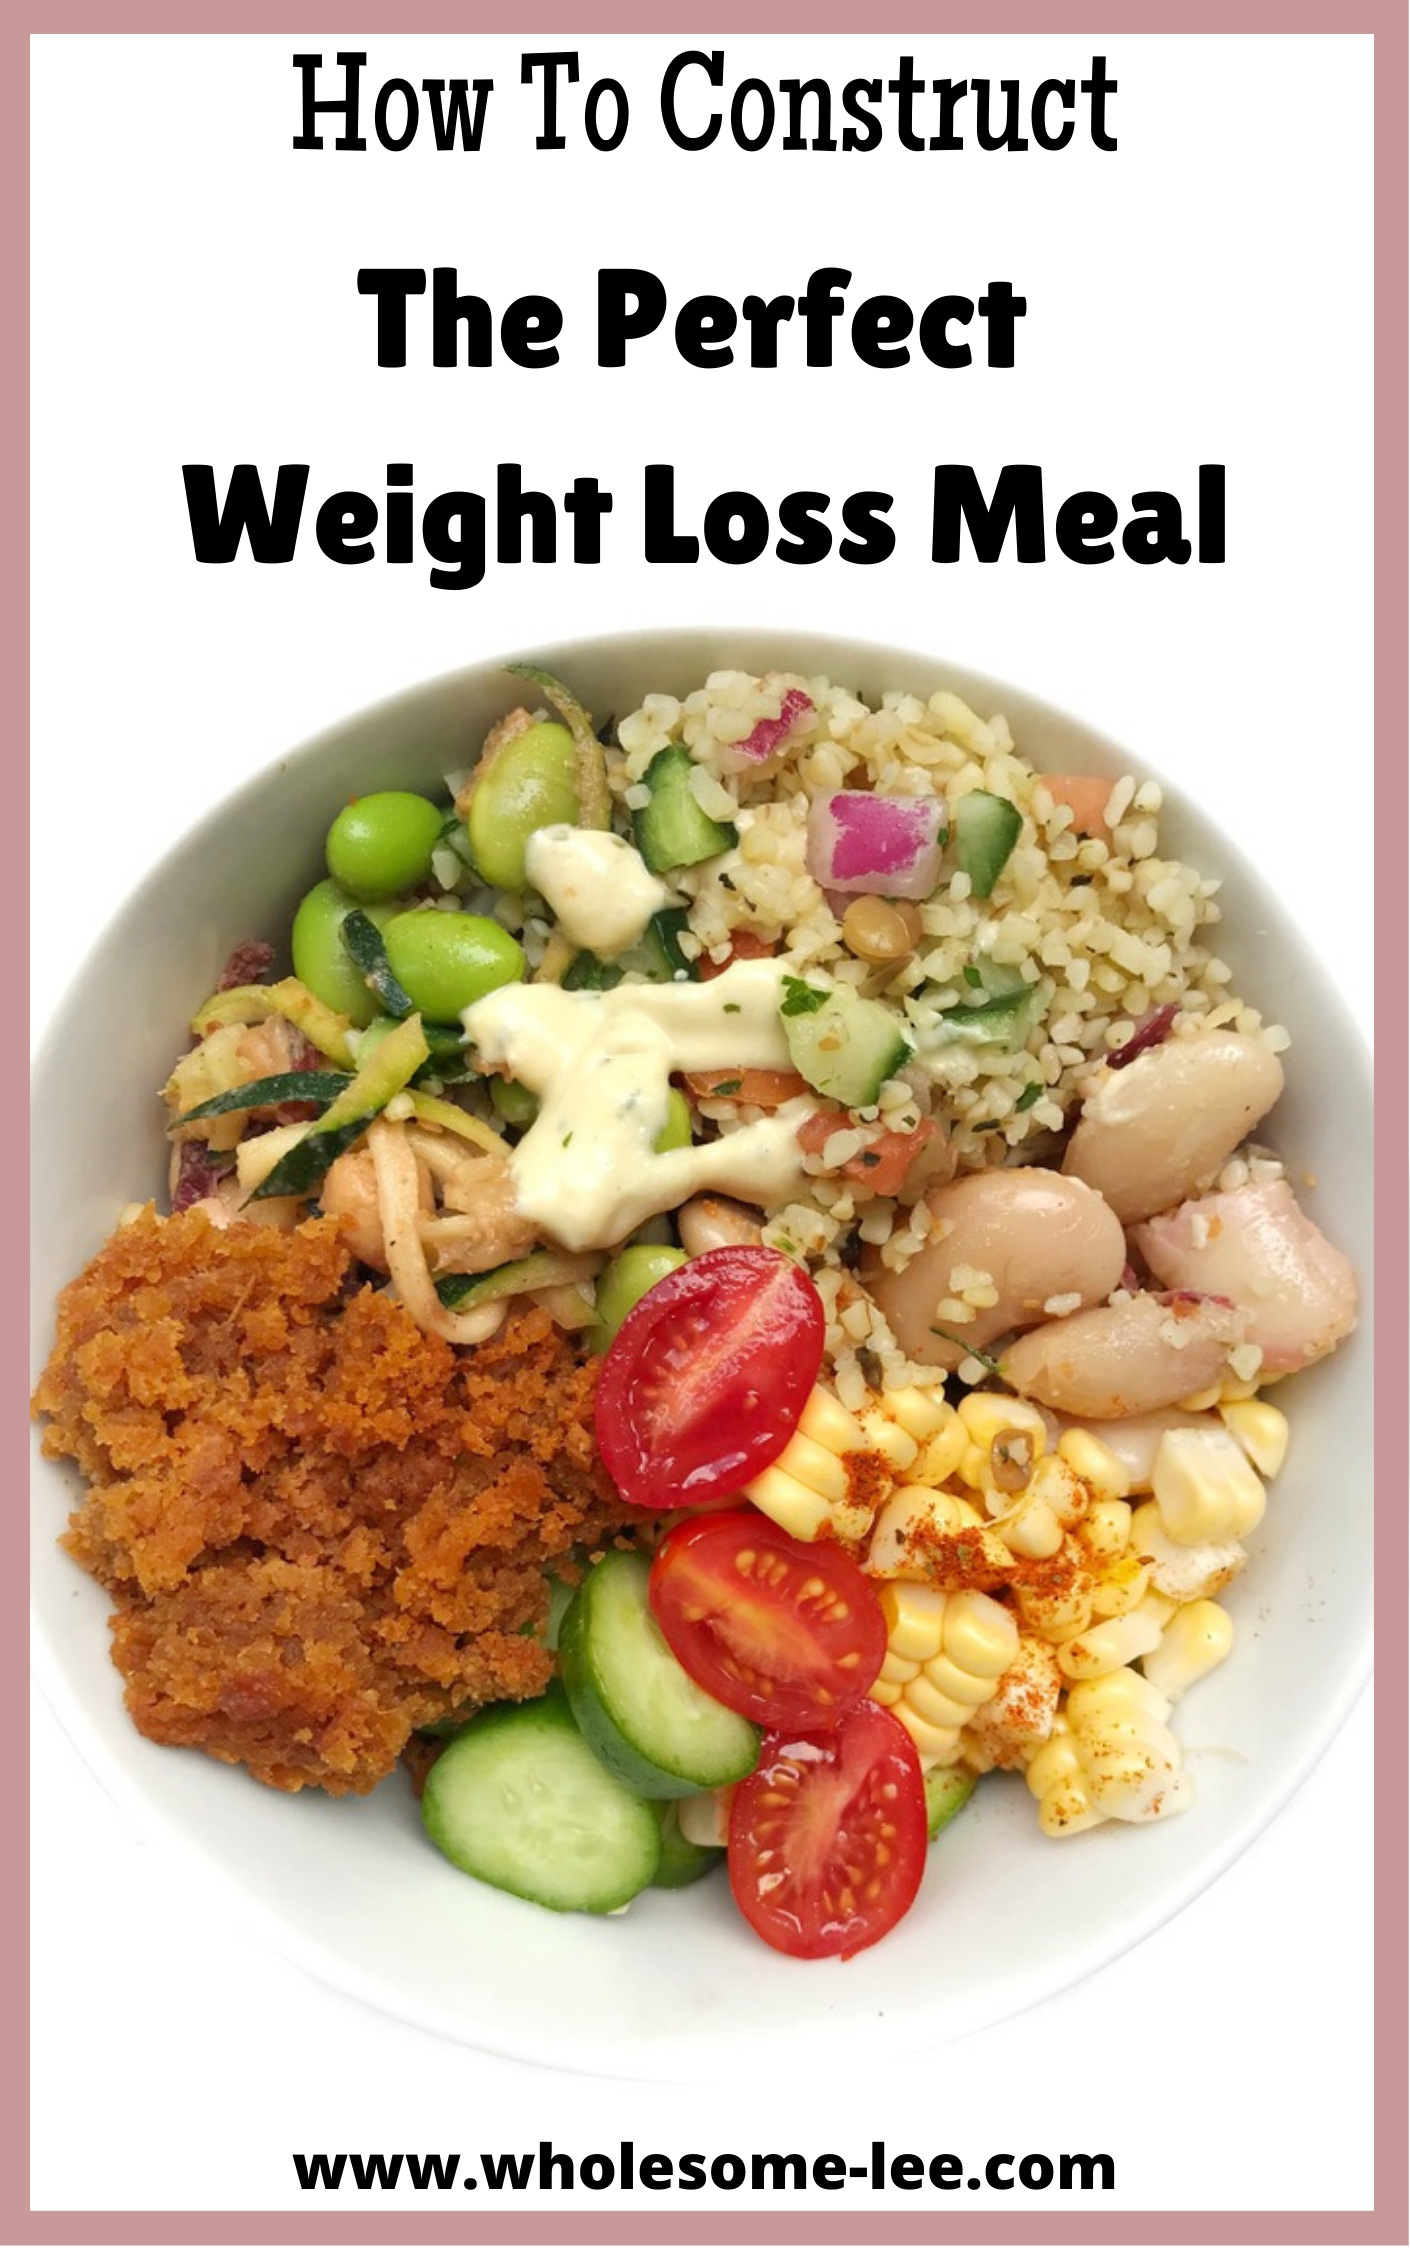 The Perfect Weight Loss Meal